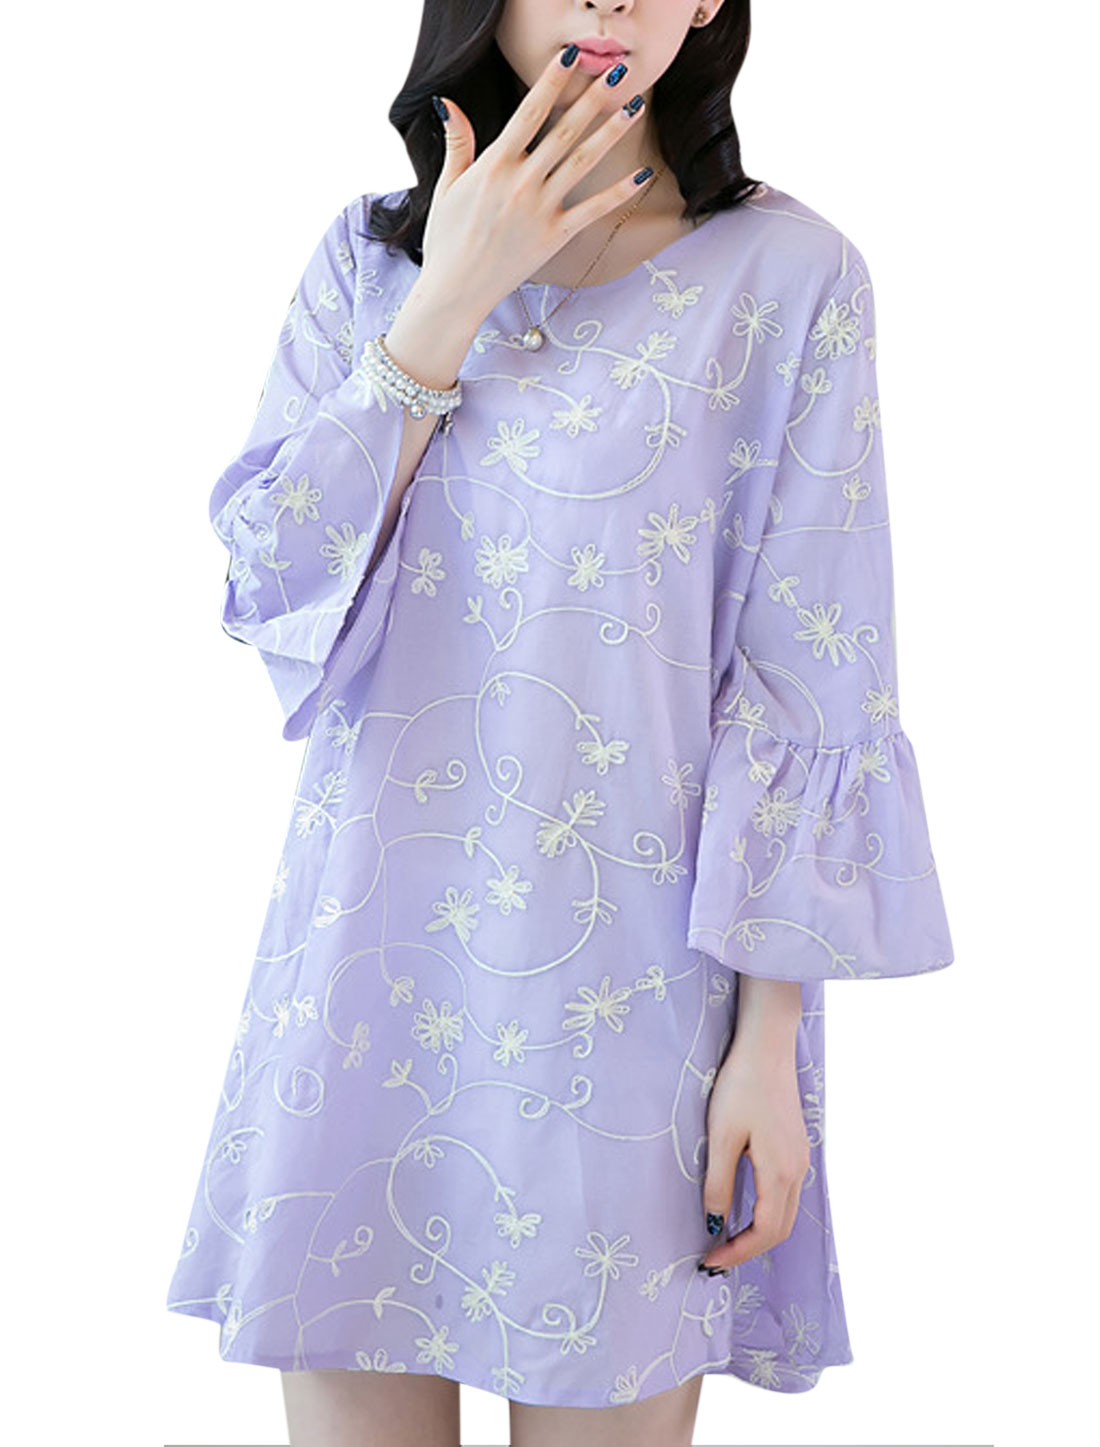 Lady 3/4 Sleeve All-over Floral Embroidery Semi Sheer Unlined Dress Lavender S